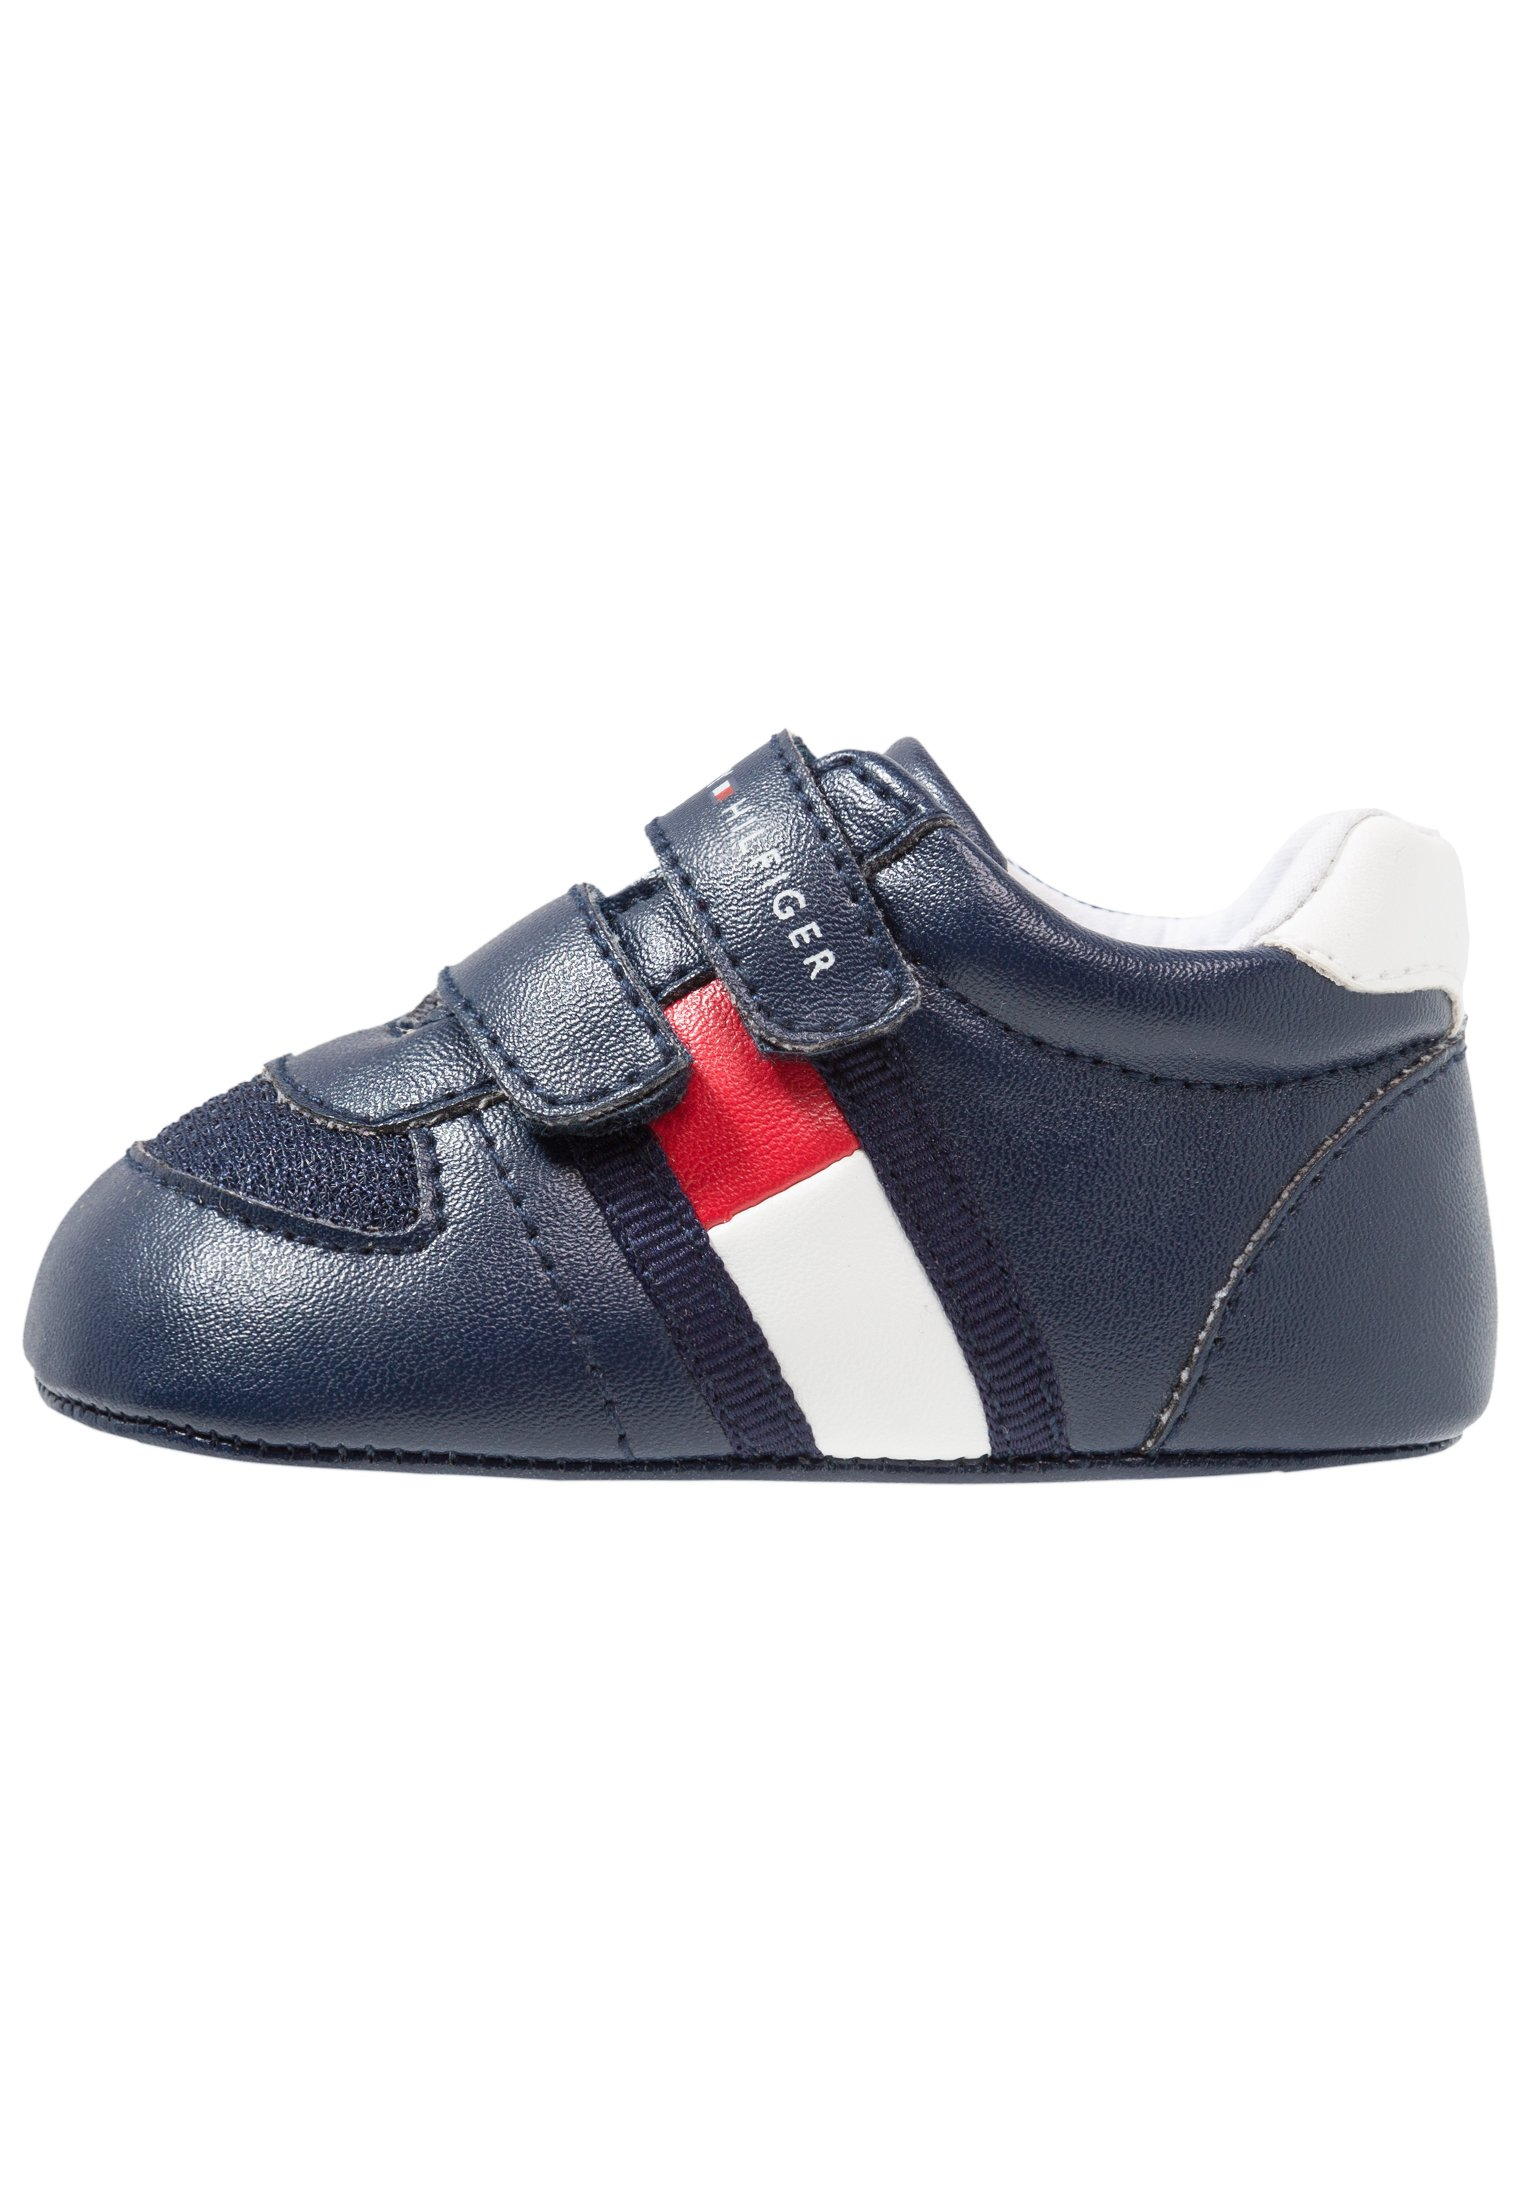 Kids First shoes